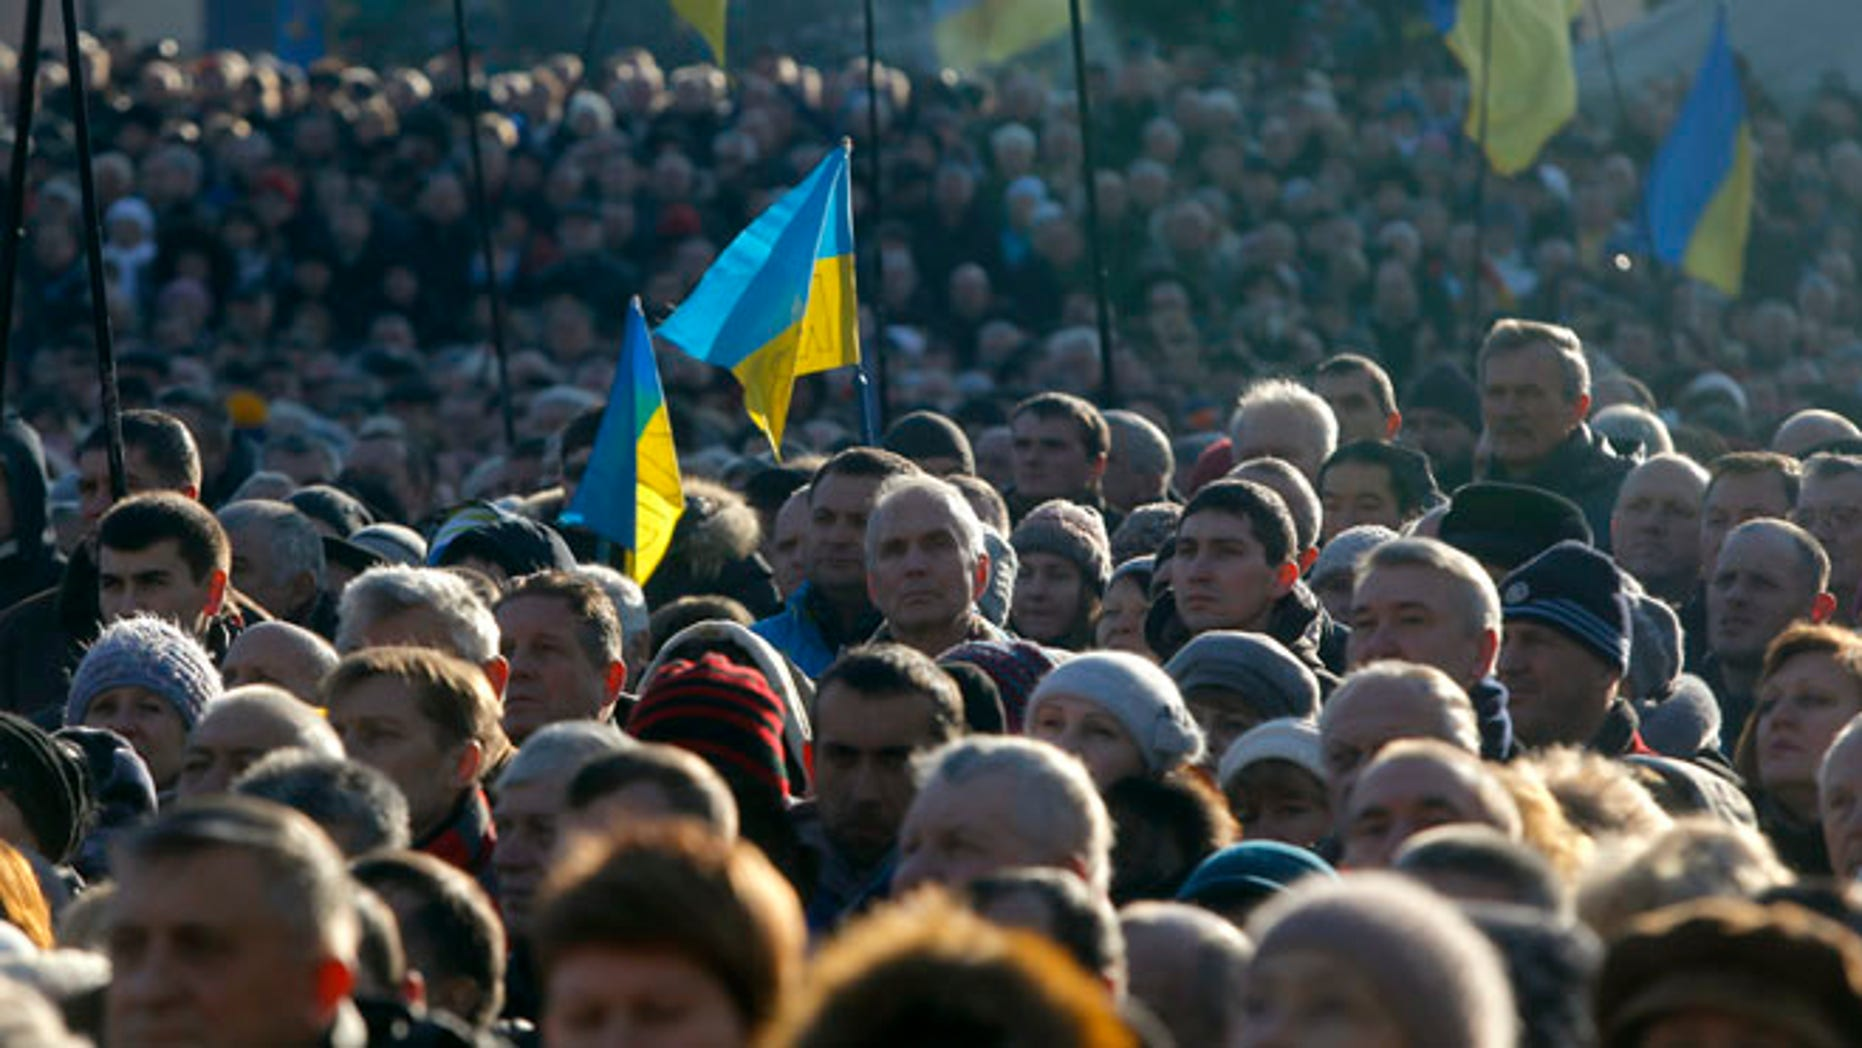 Dec. 22, 2013: Pro-European Union activists gather in Independence Square in Kiev, Ukraine. Ukraine has been stricken with mass protests for over a month. Protesters are demanding the resignation of President Viktor Yanukovych over his decision to ditch a pact with the European Union in favor of closer ties with Russia.